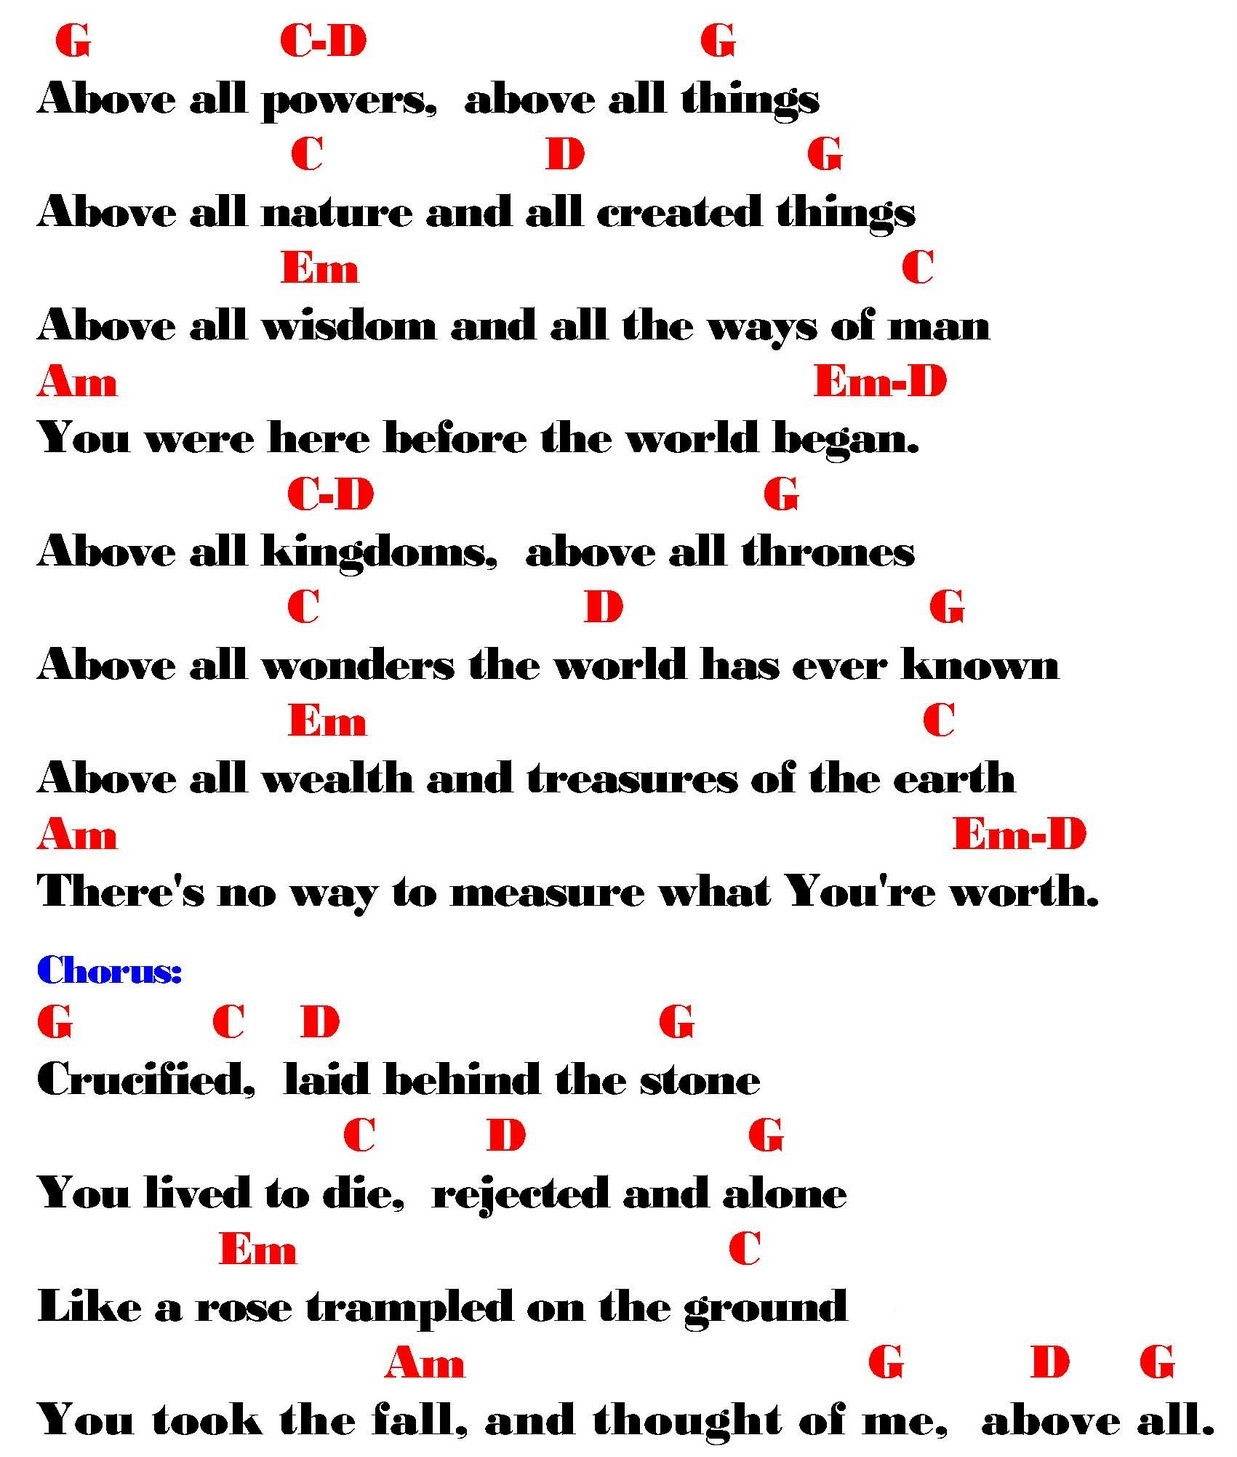 Tempted chords and lyrics free here tempted chords and lyrics hexwebz Choice Image